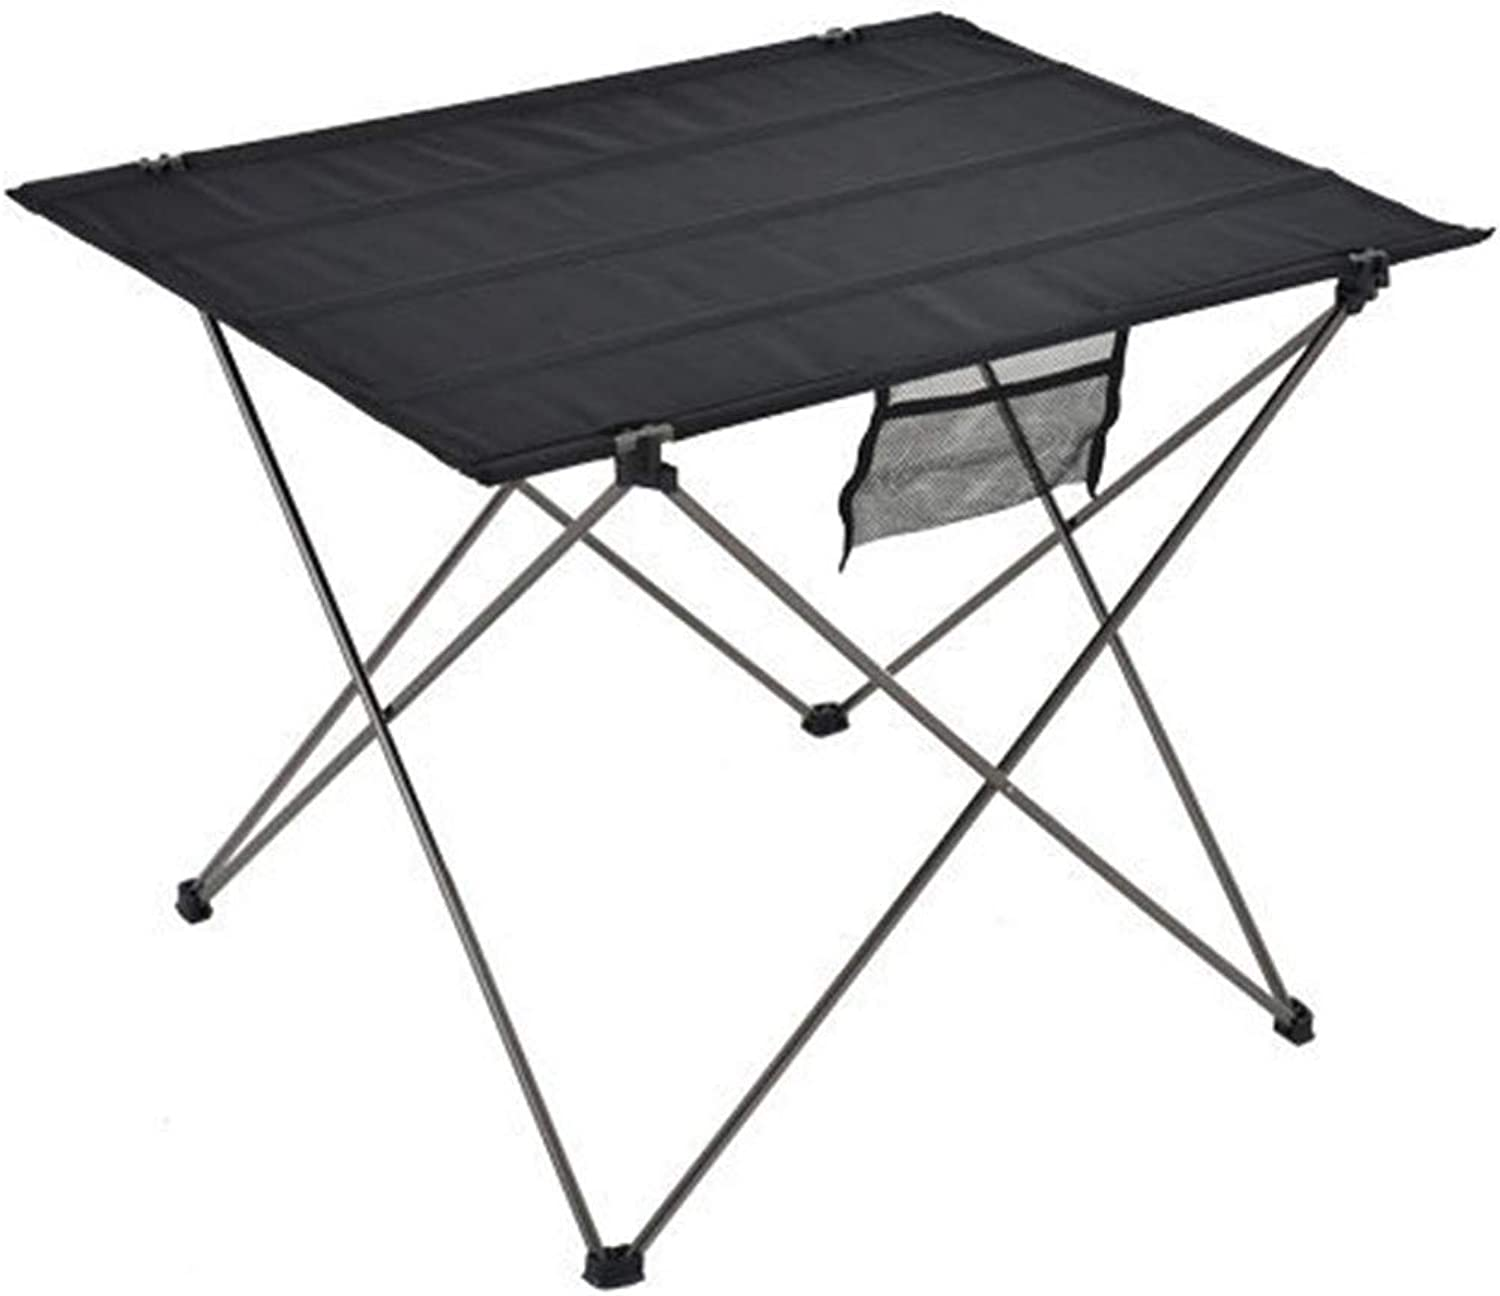 Camping Table Compact Foldable Roll Up Table with Carrying Bag for Picnic Camping Fishing